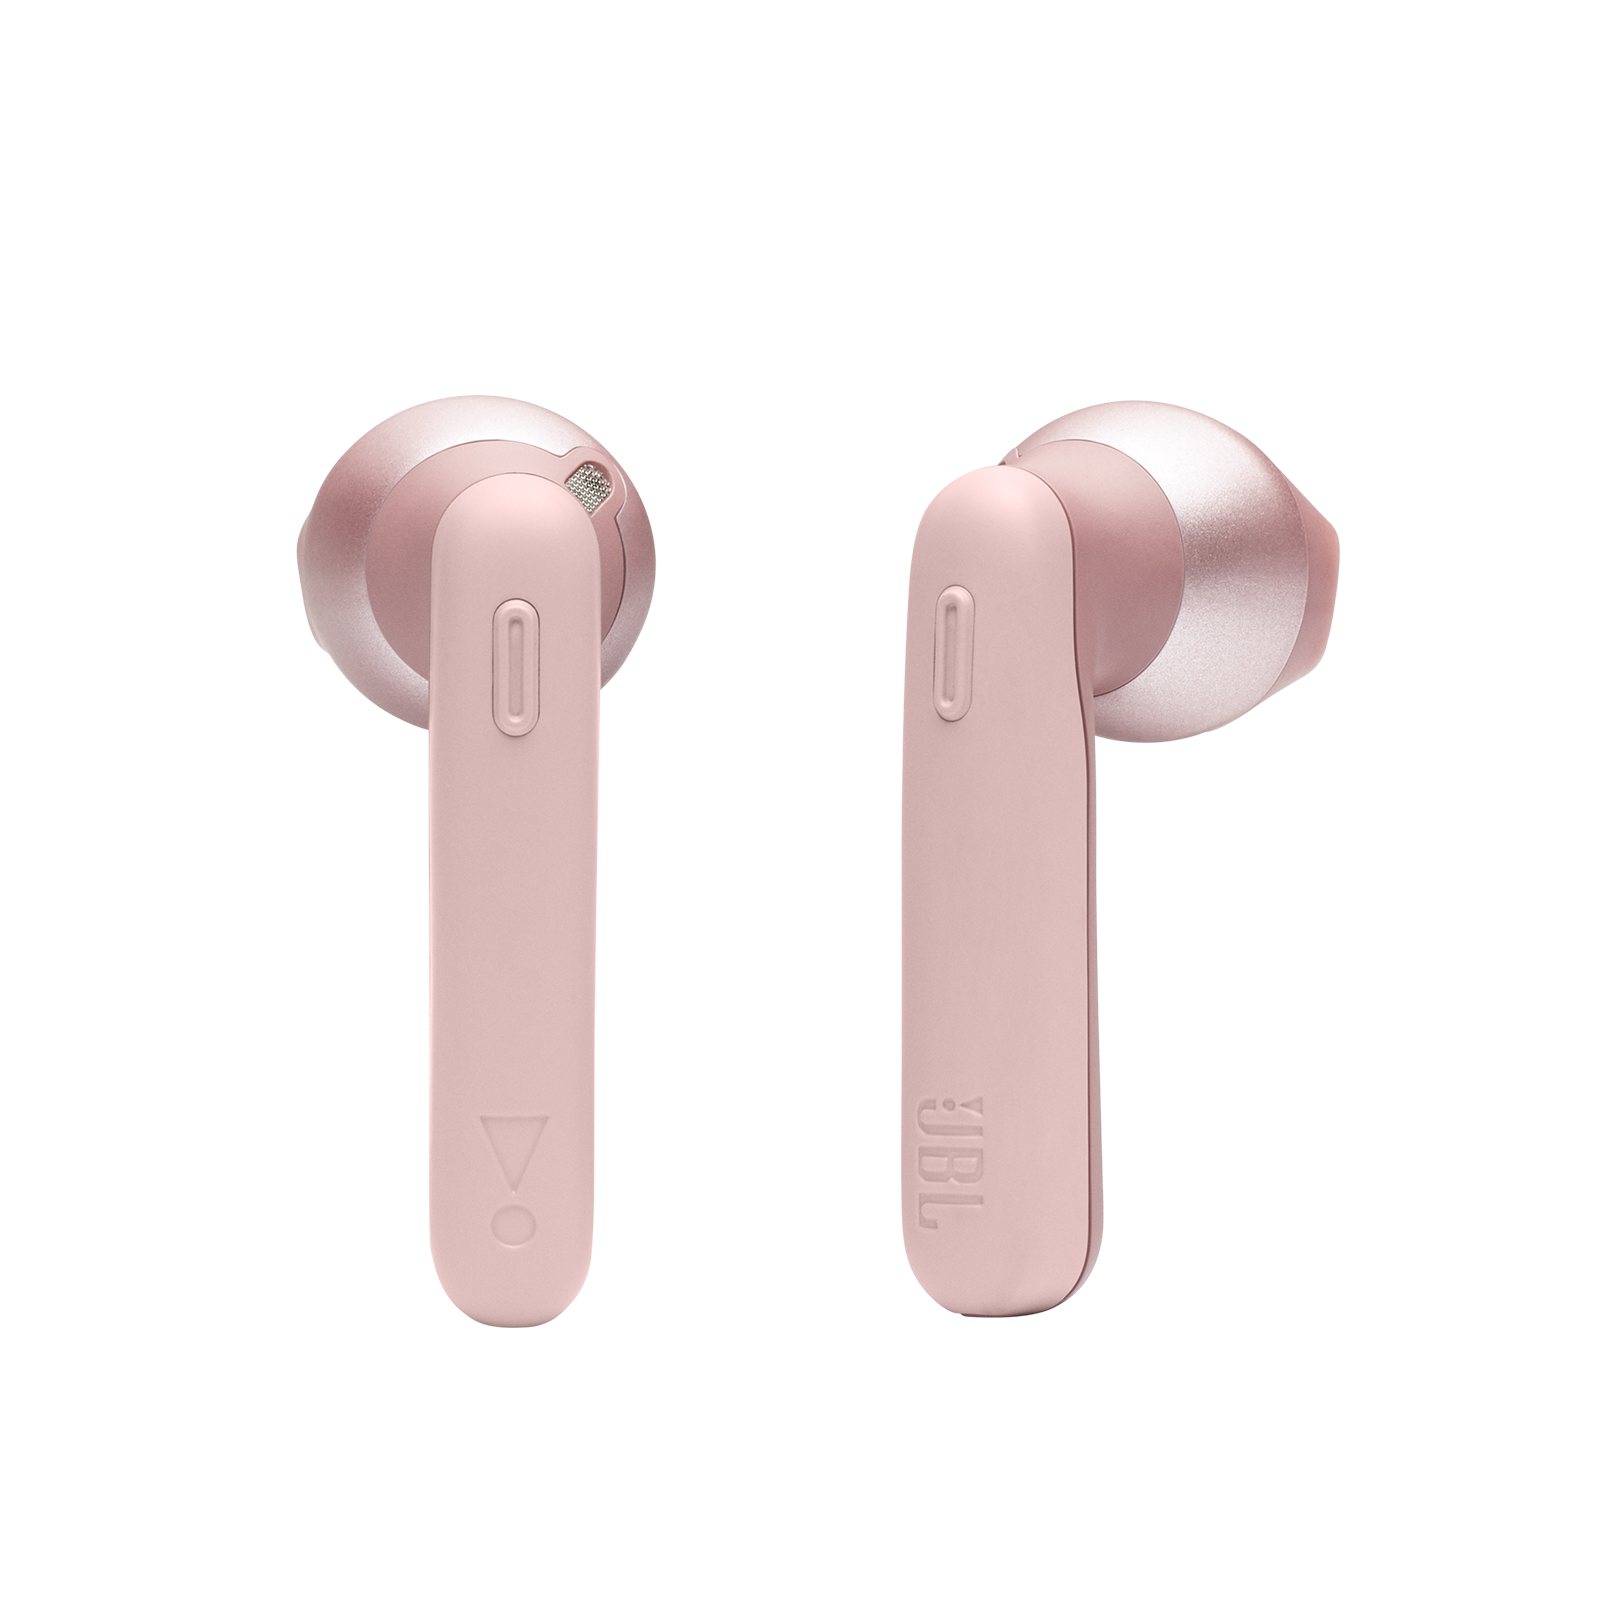 JBL TUNE 220TWS - Pink - True wireless earbuds - Detailshot 1